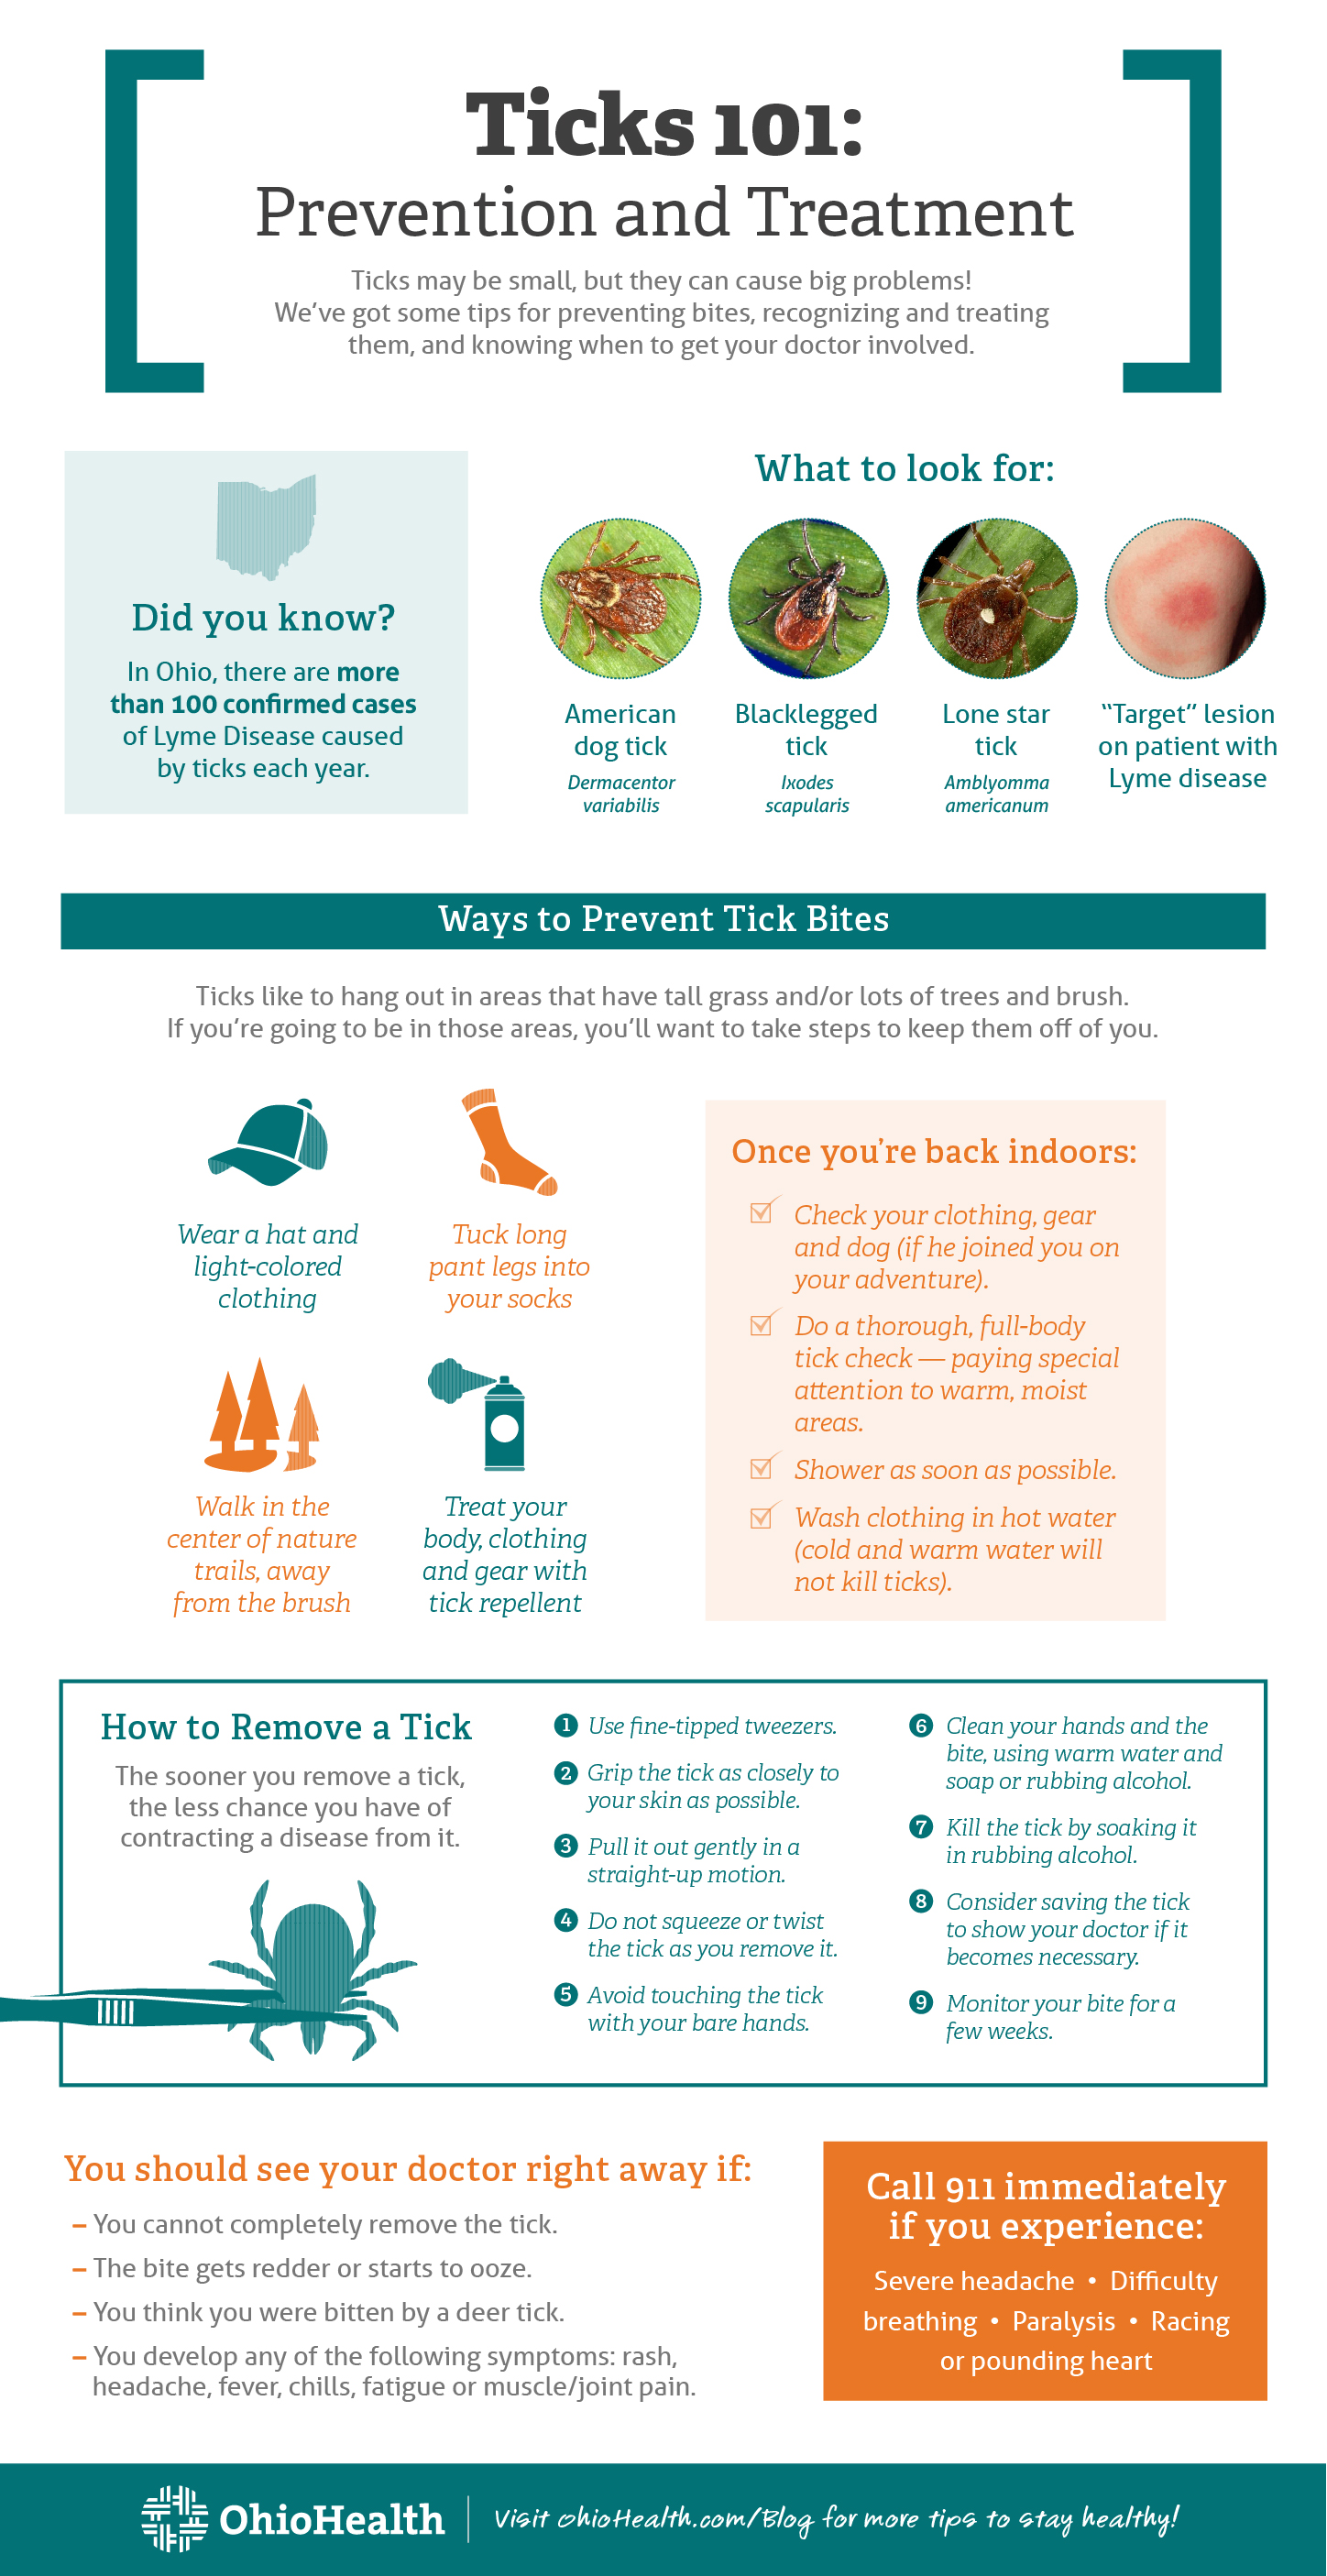 Infographic describing prevention and treatment of tick bites